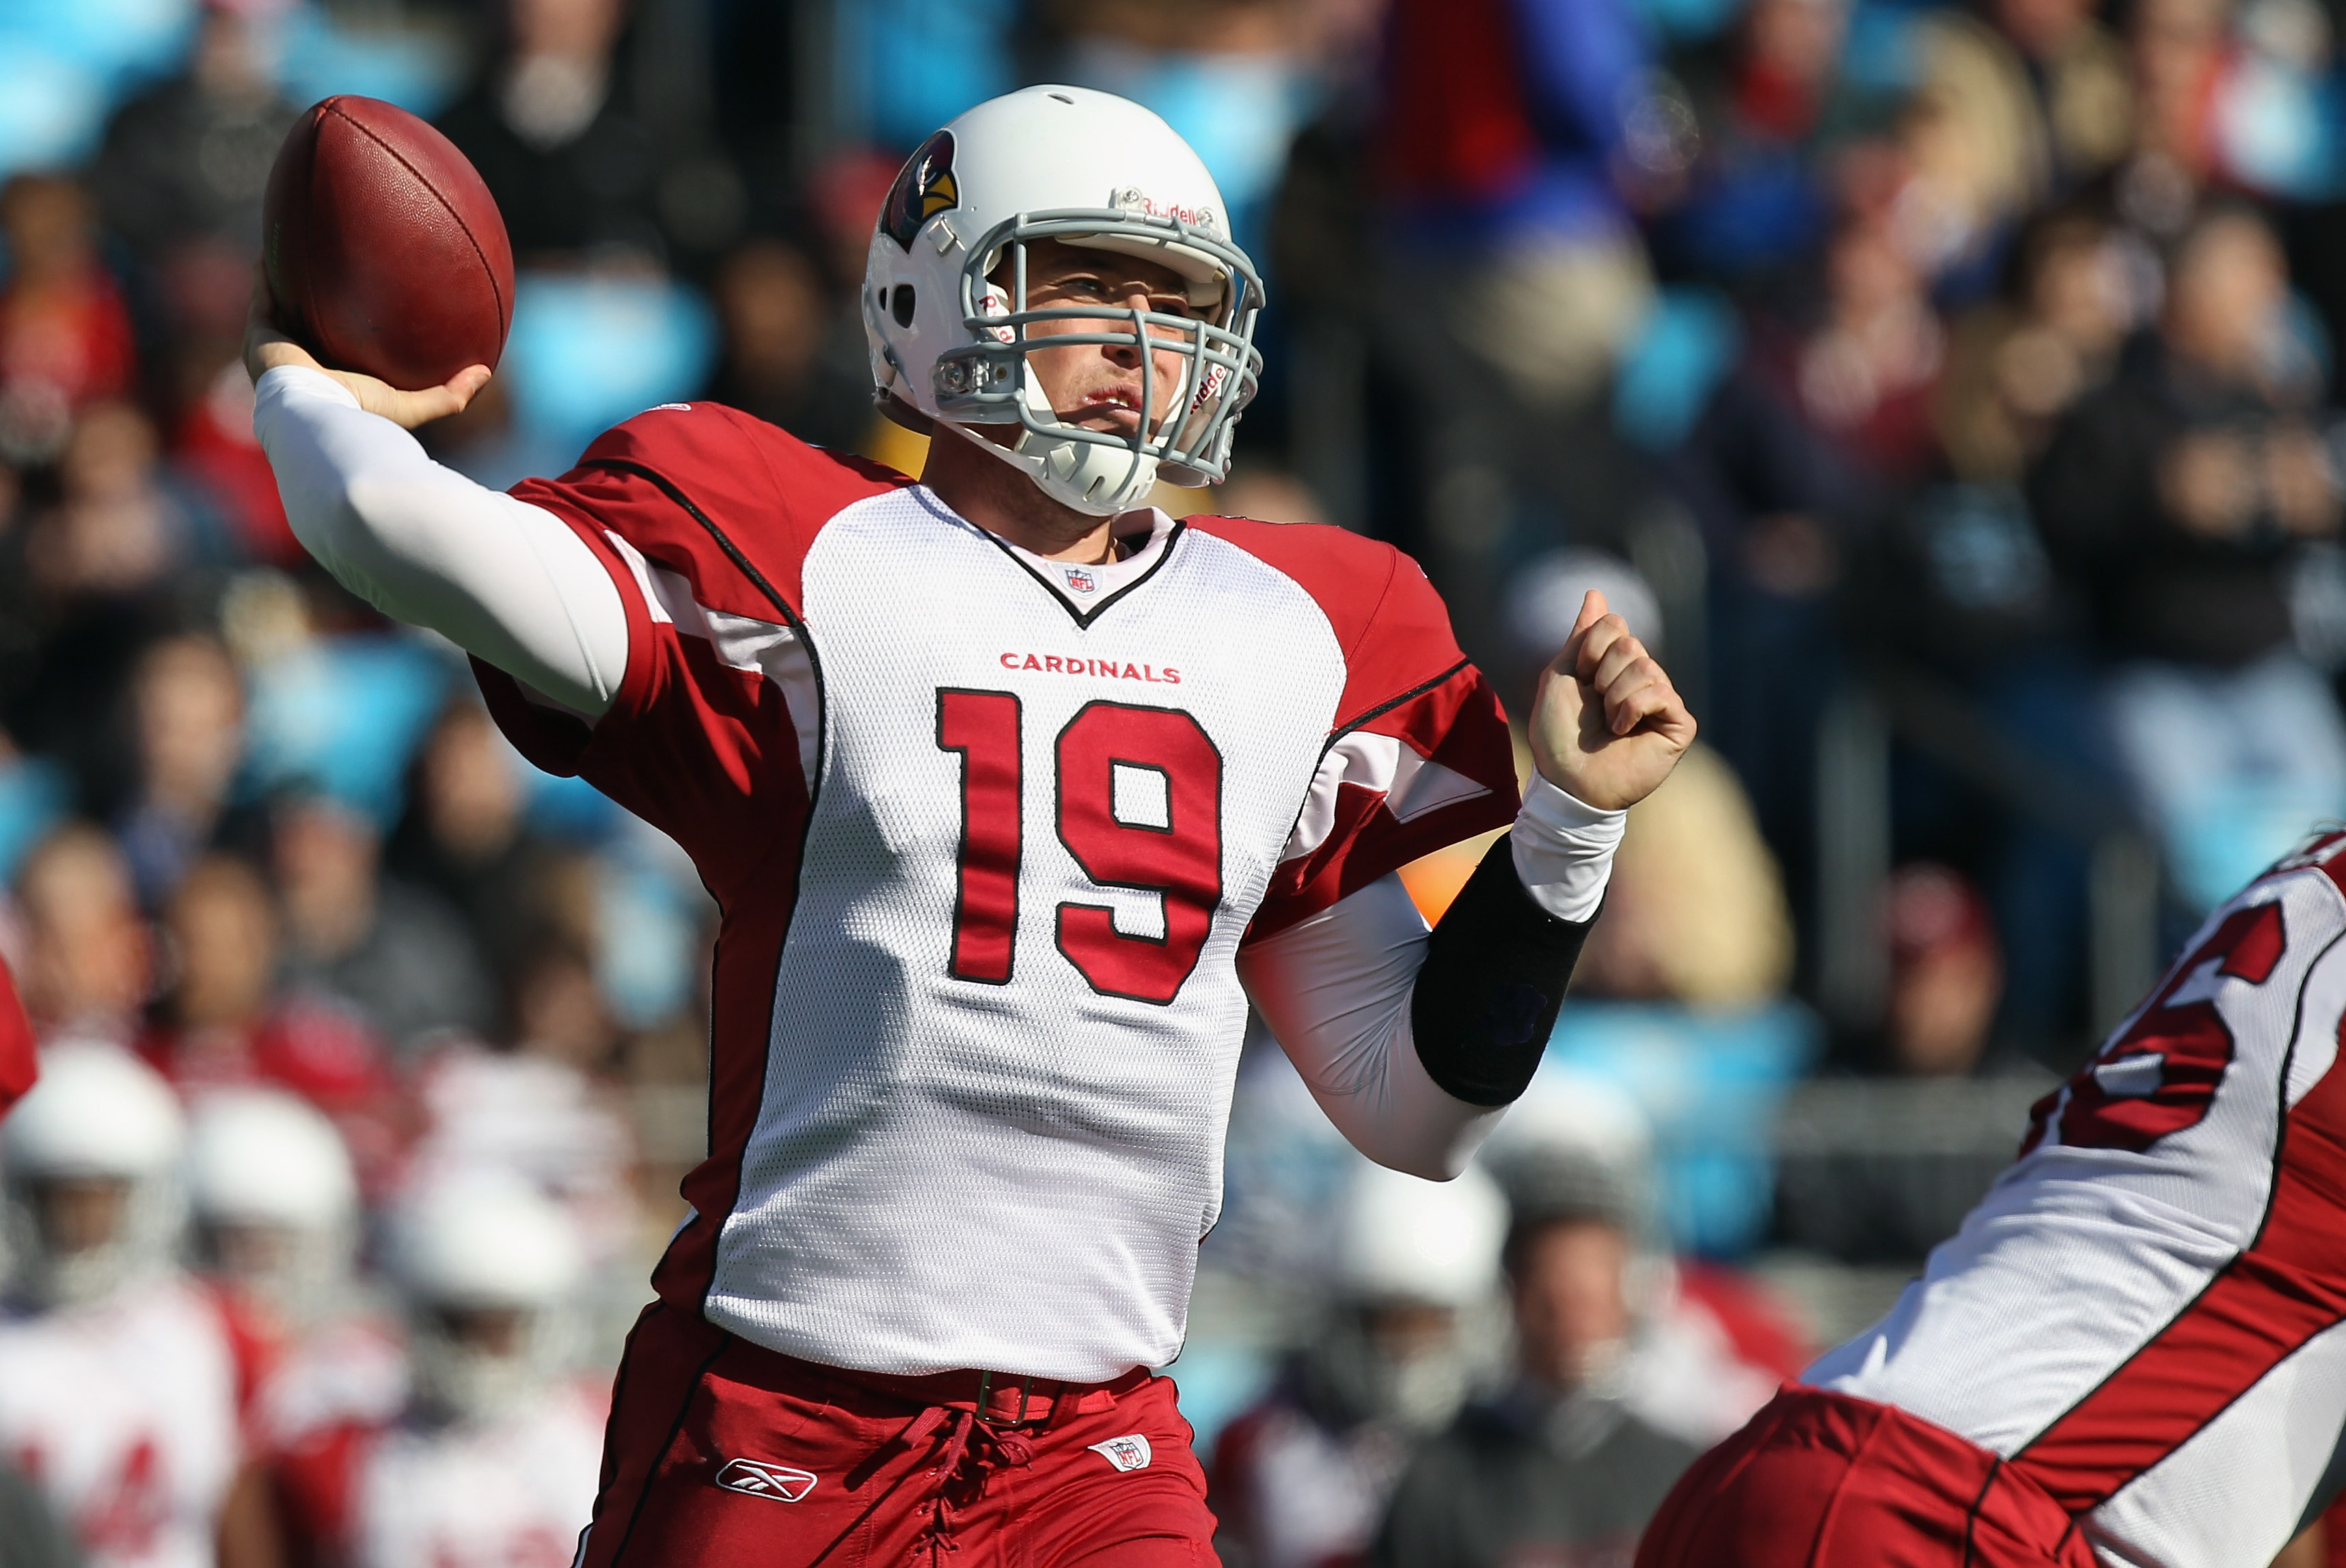 CHARLOTTE, NC - DECEMBER 19:  John Skelton #19 of the Arizona Cardinals drops back to throw a pass against the Carolina Panthers during their game at Bank of America Stadium on December 19, 2010 in Charlotte, North Carolina.  (Photo by Streeter Lecka/Gett